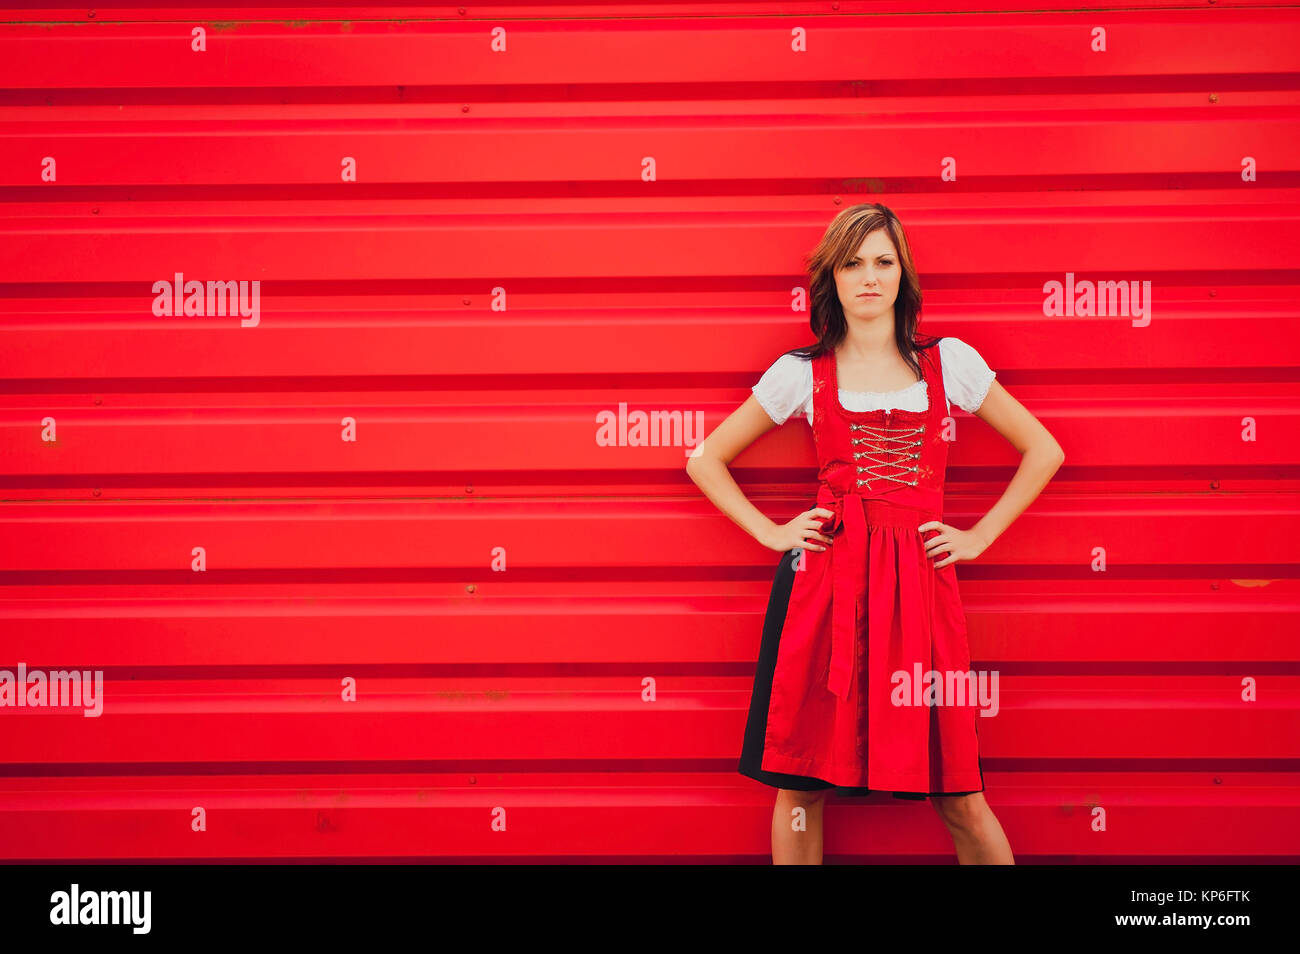 Frau im roten Dirndl vor roter Wand - Lady in red - Stock Image